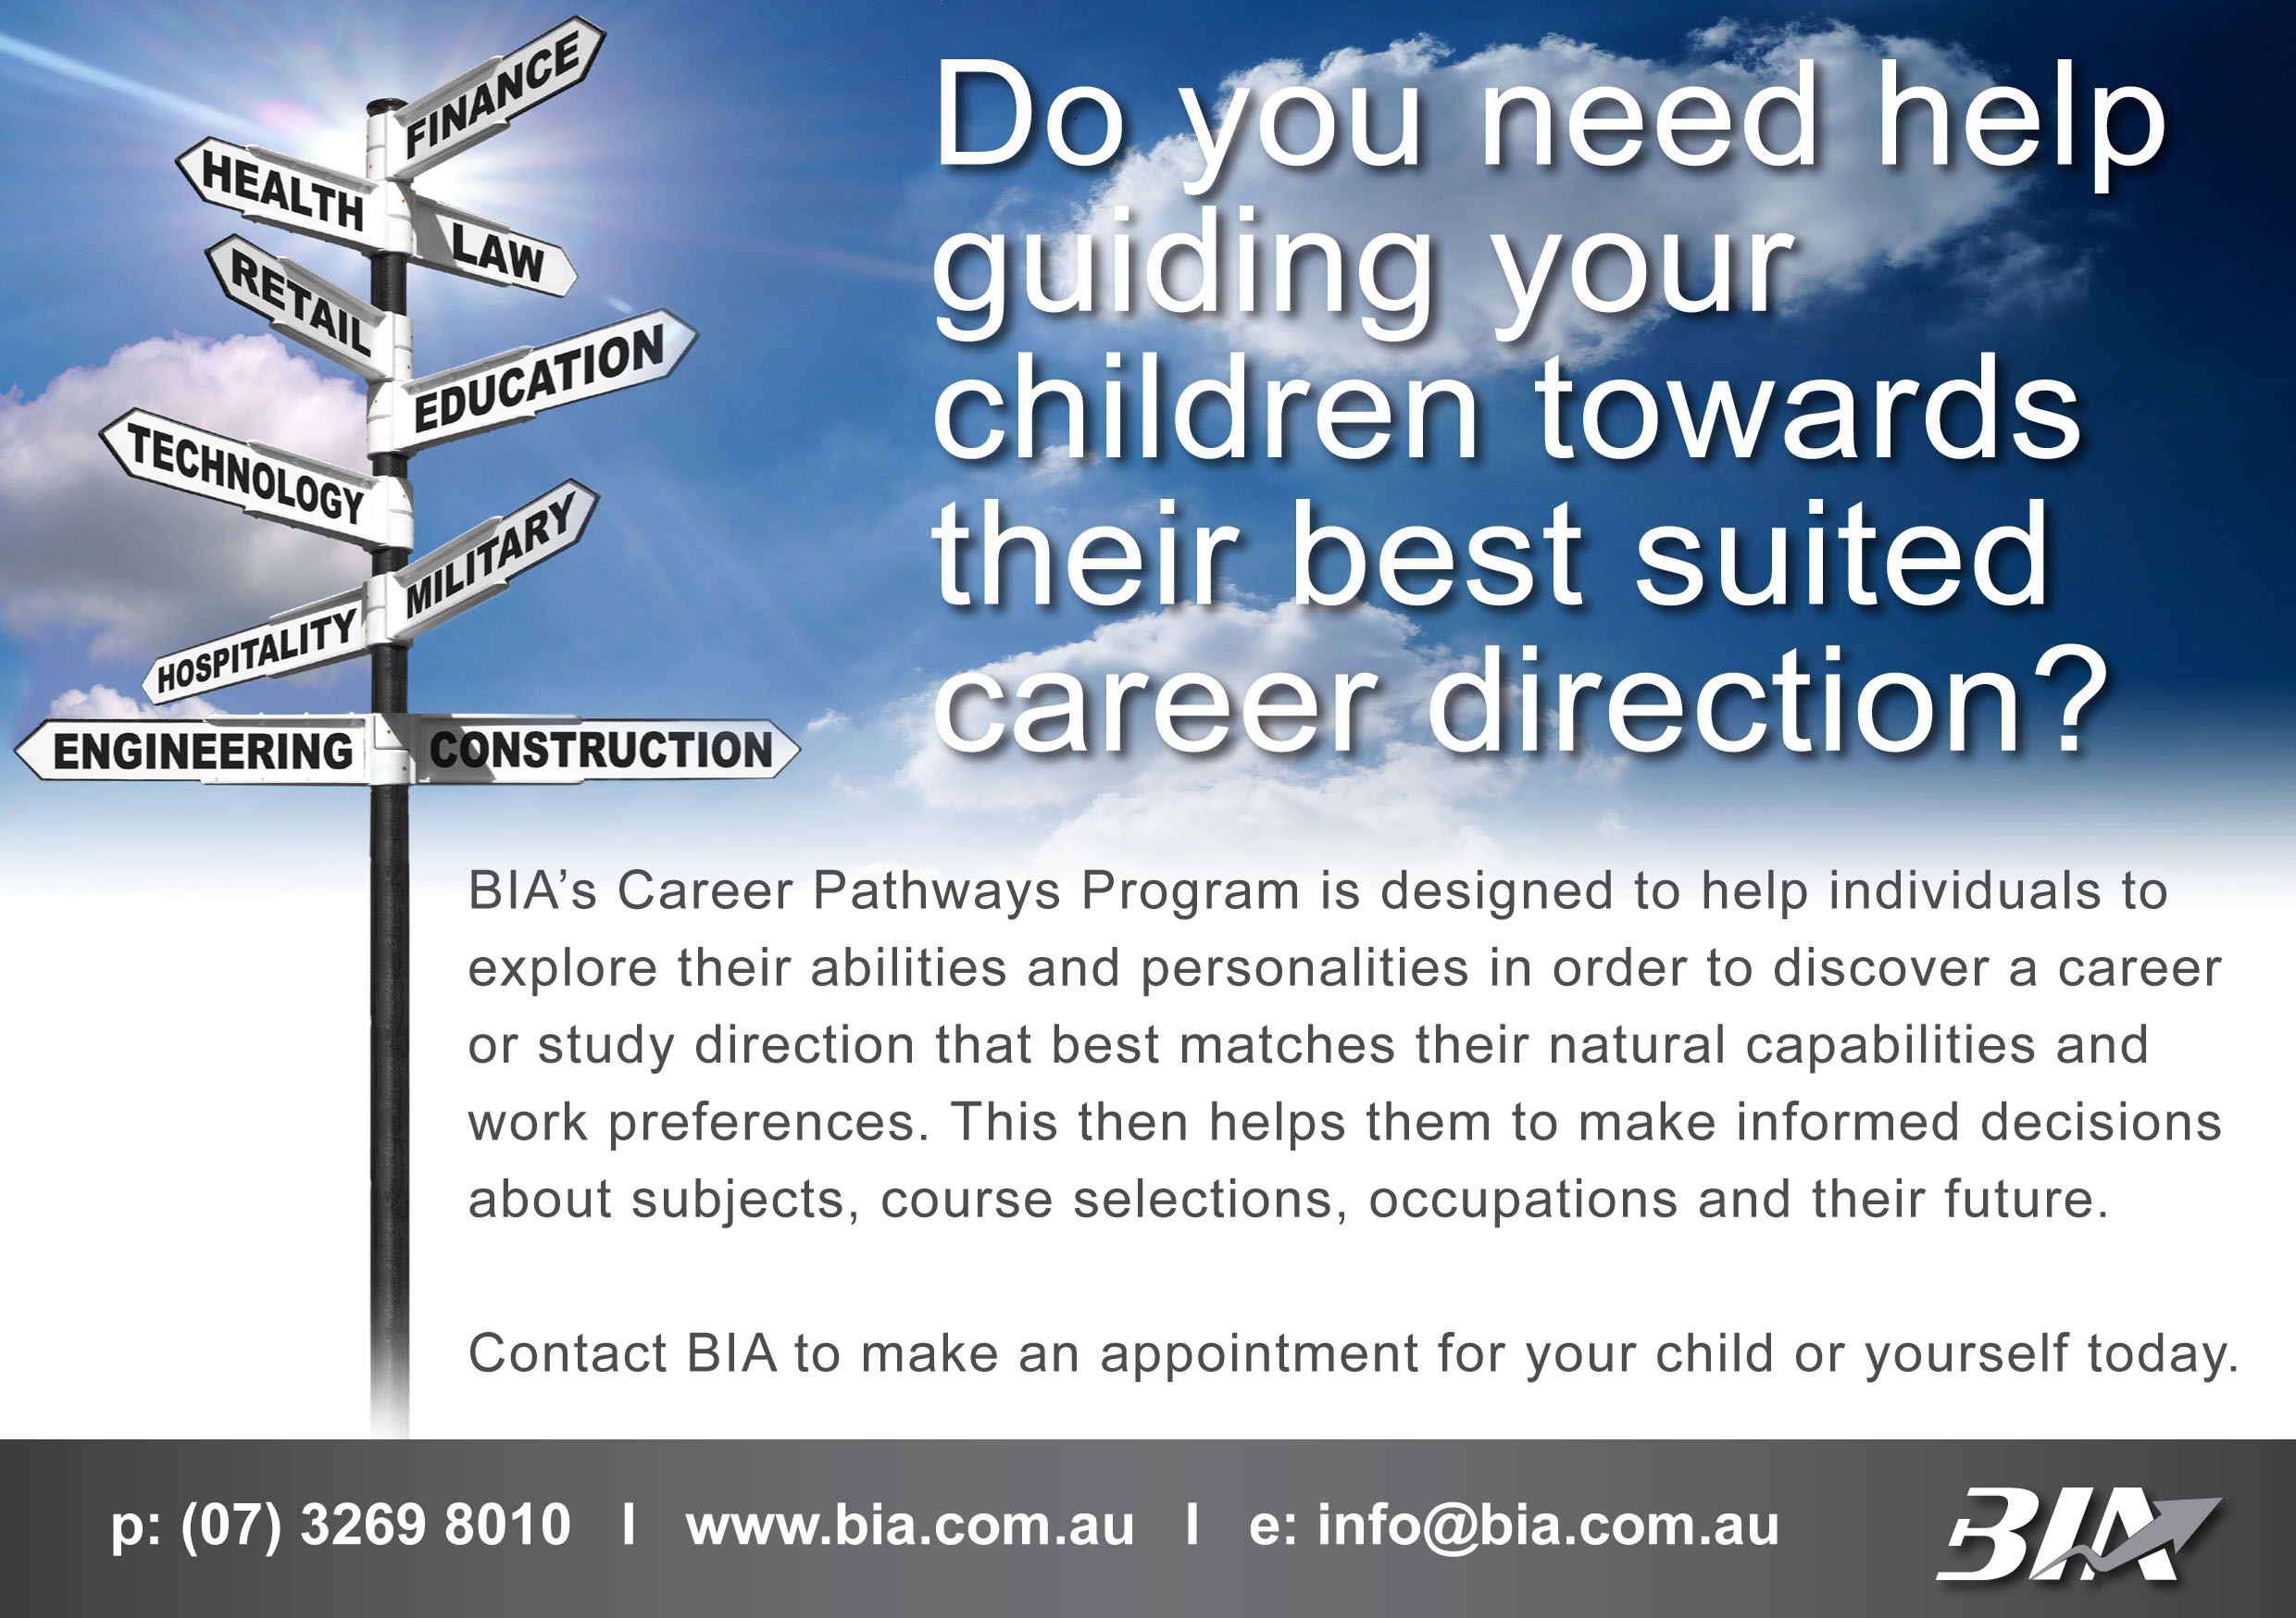 BIA-Career-Pathways-St-Pats-Ad.jpg?mtime